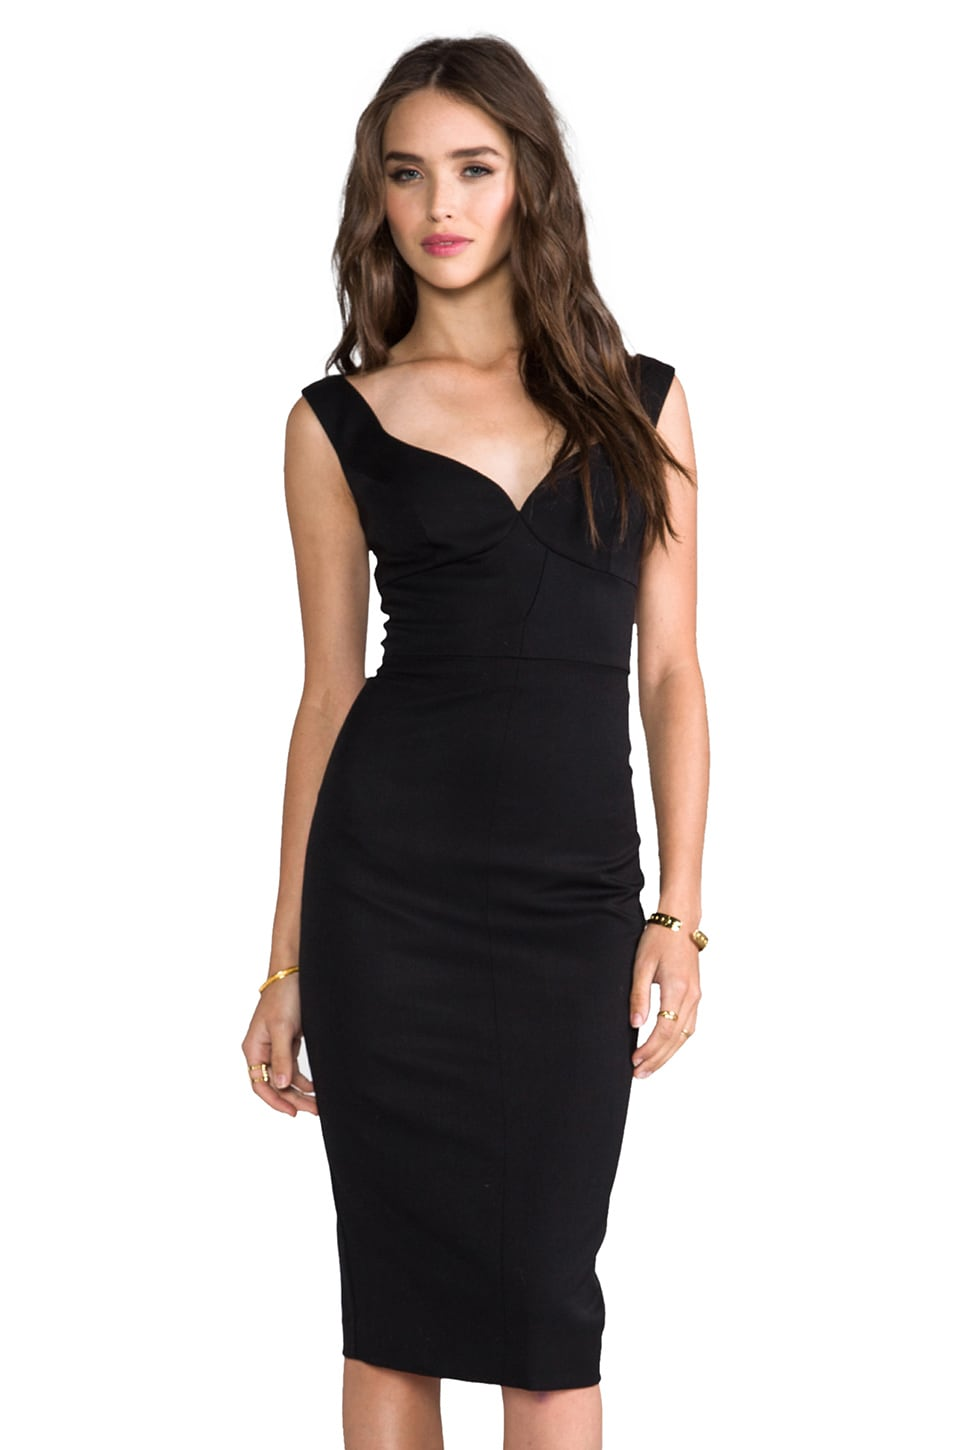 Black Halo Ally Sheath Dress in Black